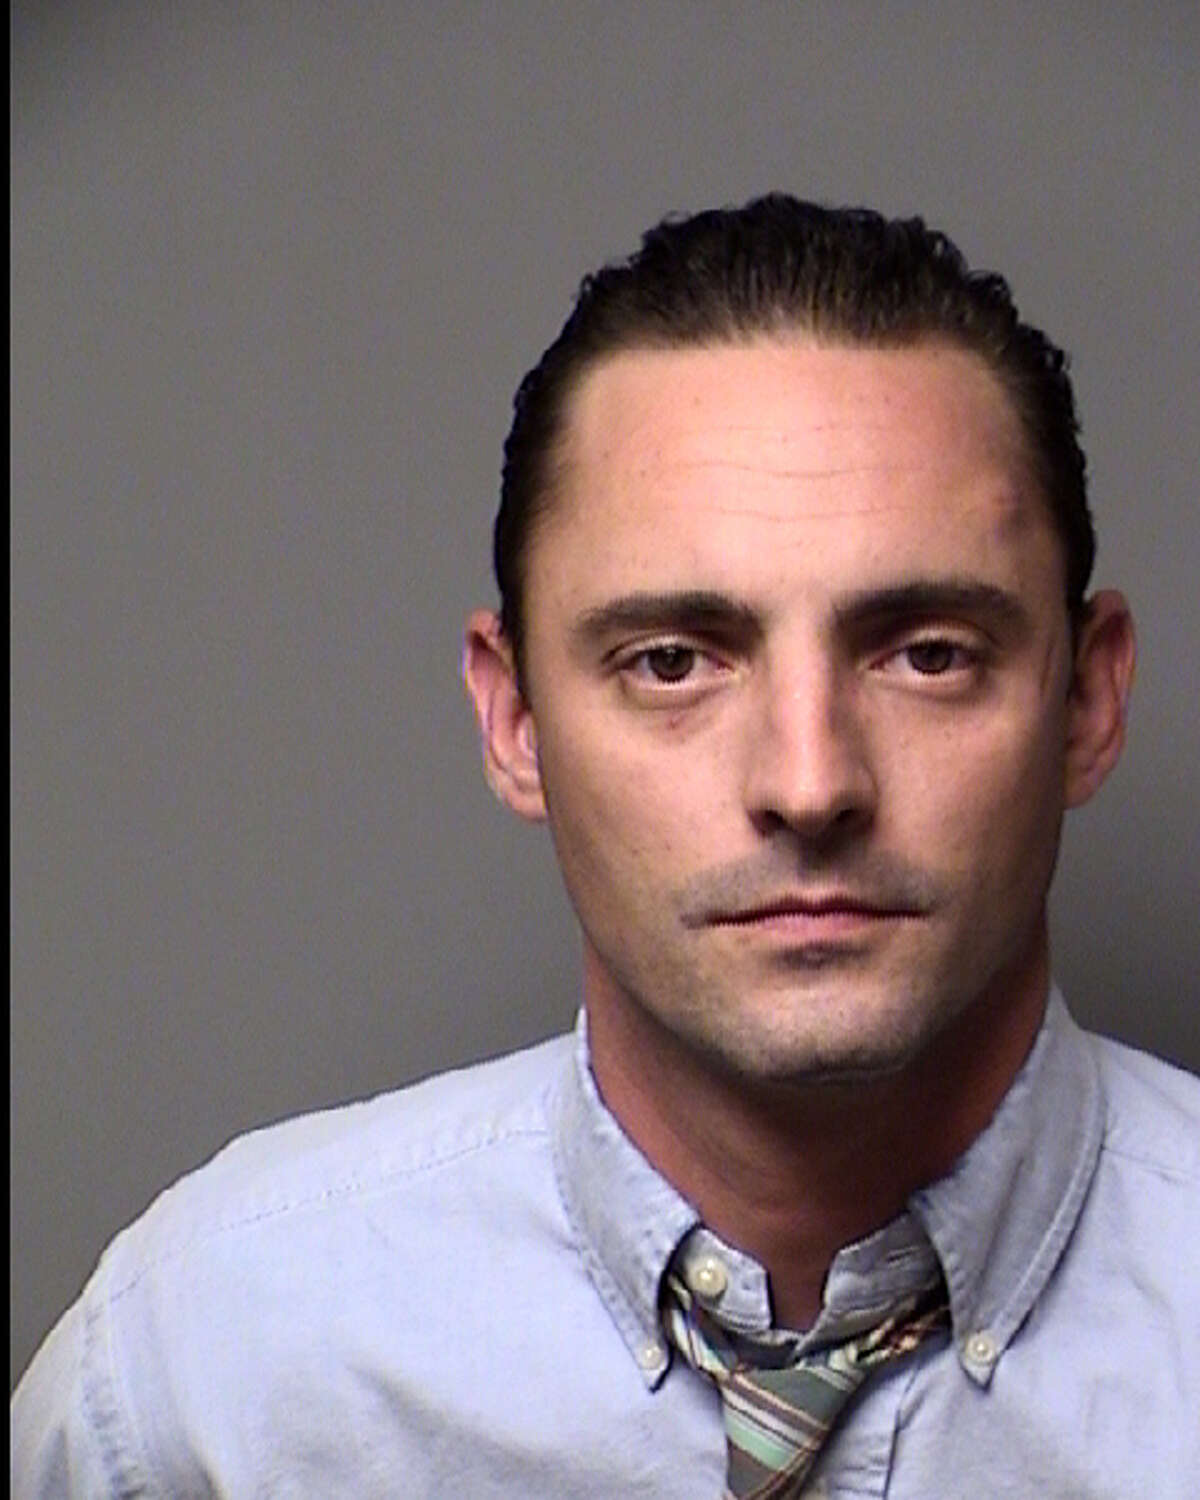 Jason Stafford Wentworth, son of former State Senator Jeff Wentworth, is seen in an Aug. 29, 2013 booking mug provided Aug. 30, 2013 by the Bexar County Sheriff Department. Wentworth was arrested Wednesday for probation violations related to a May 20, 2011, driving while intoxicated charge.